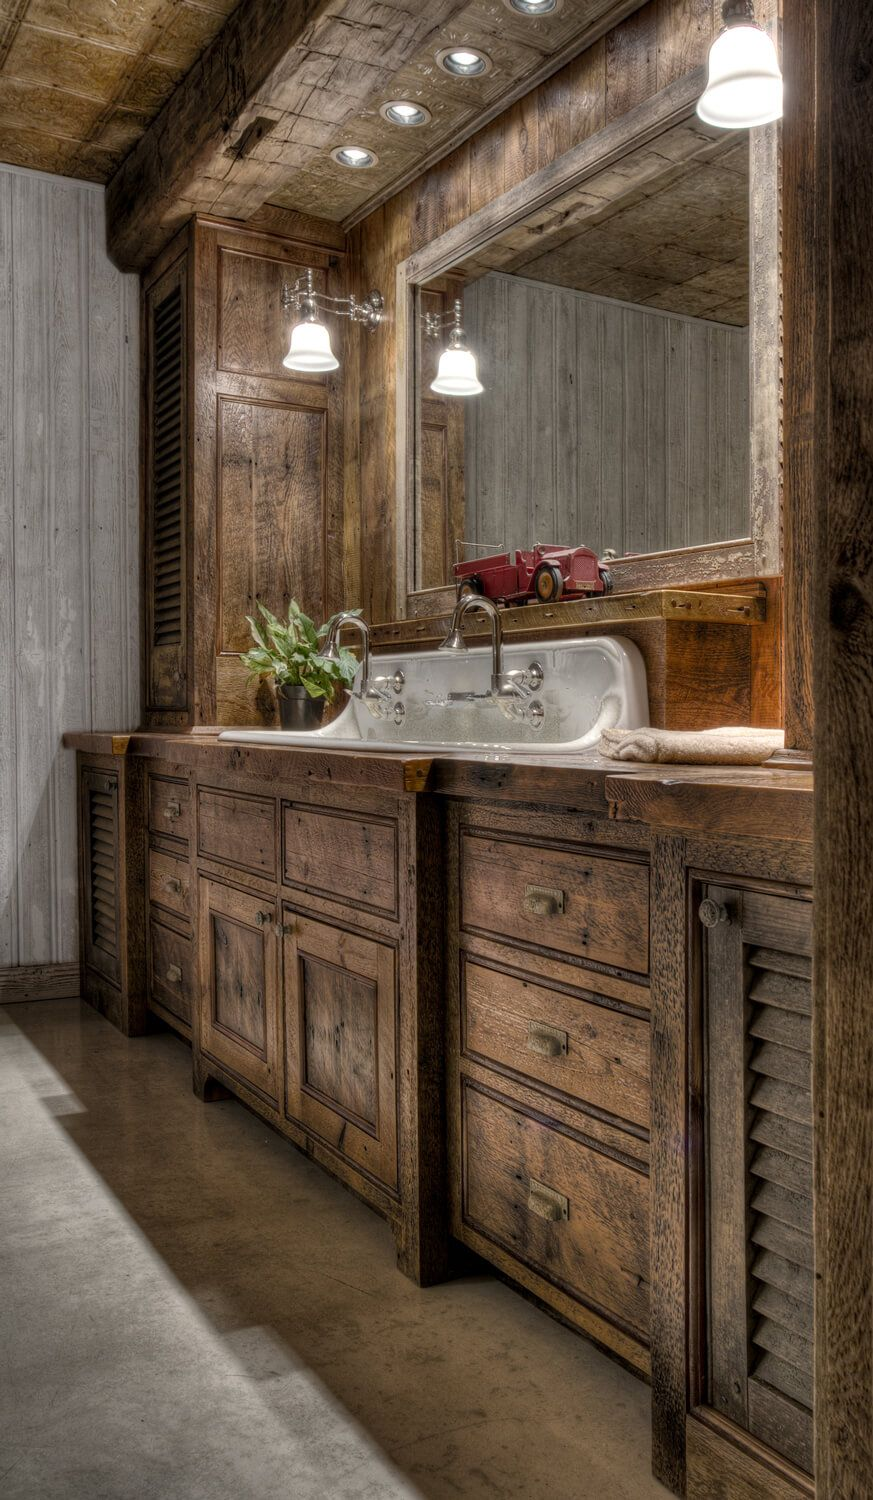 Photo of Rustic Bathroom Vanity Idea with Dark Wood